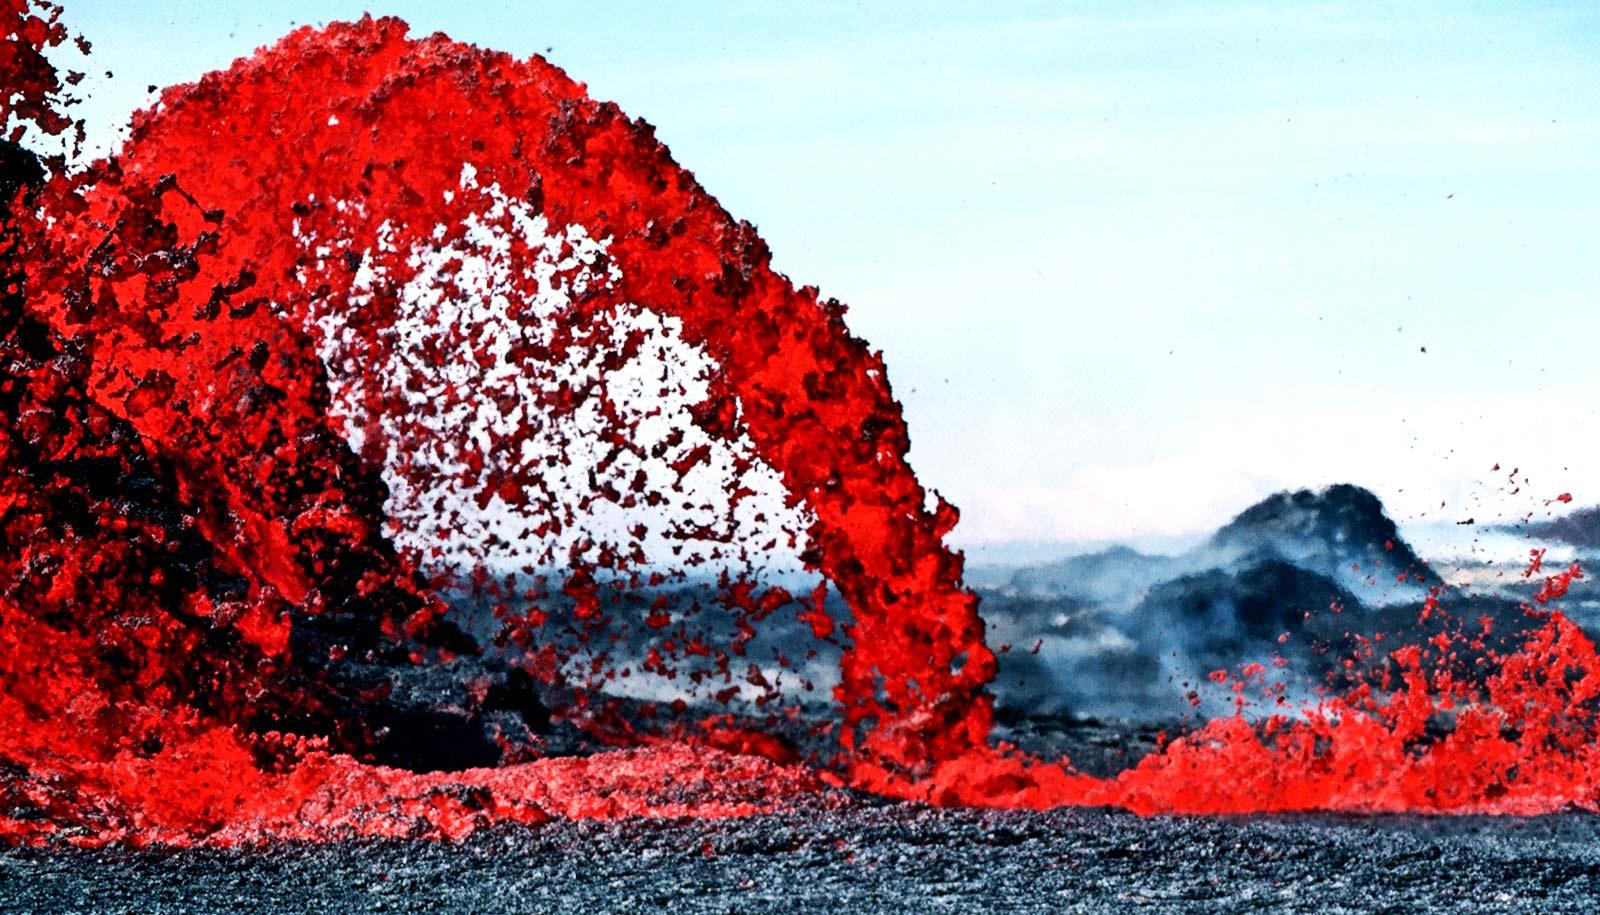 Bright red magma pours from a volcano